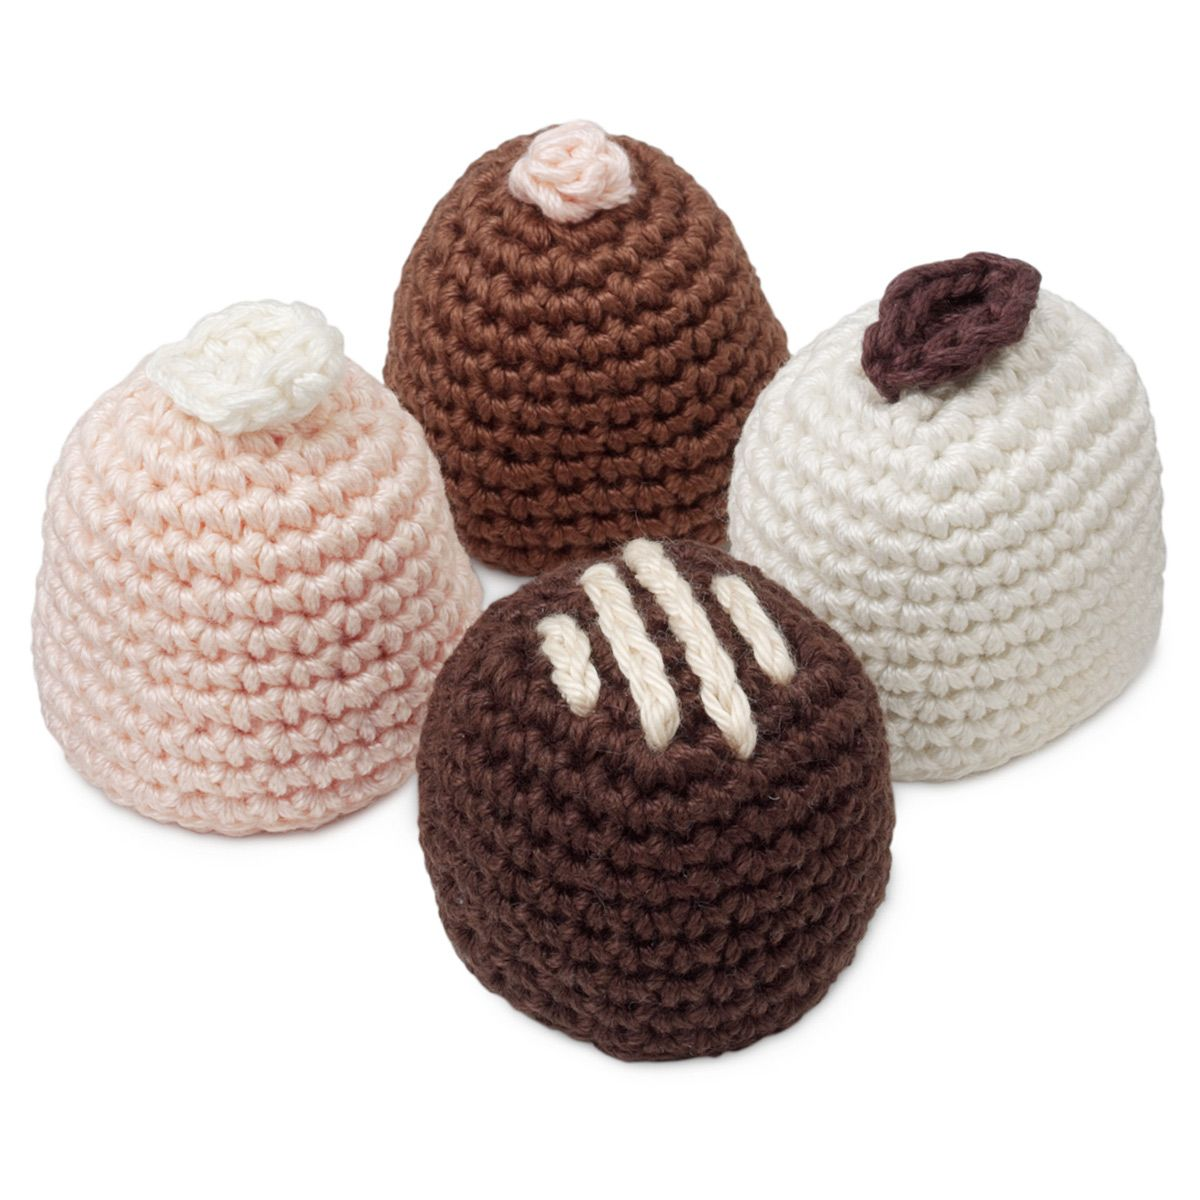 ASSORTED CHOCOLATES CROCHETED SACHETS | Potpourri, Drawer Liner, Clothes Freshener, For Her, Crochet Dessert, Vanilla, Chocolate | UncommonGoods